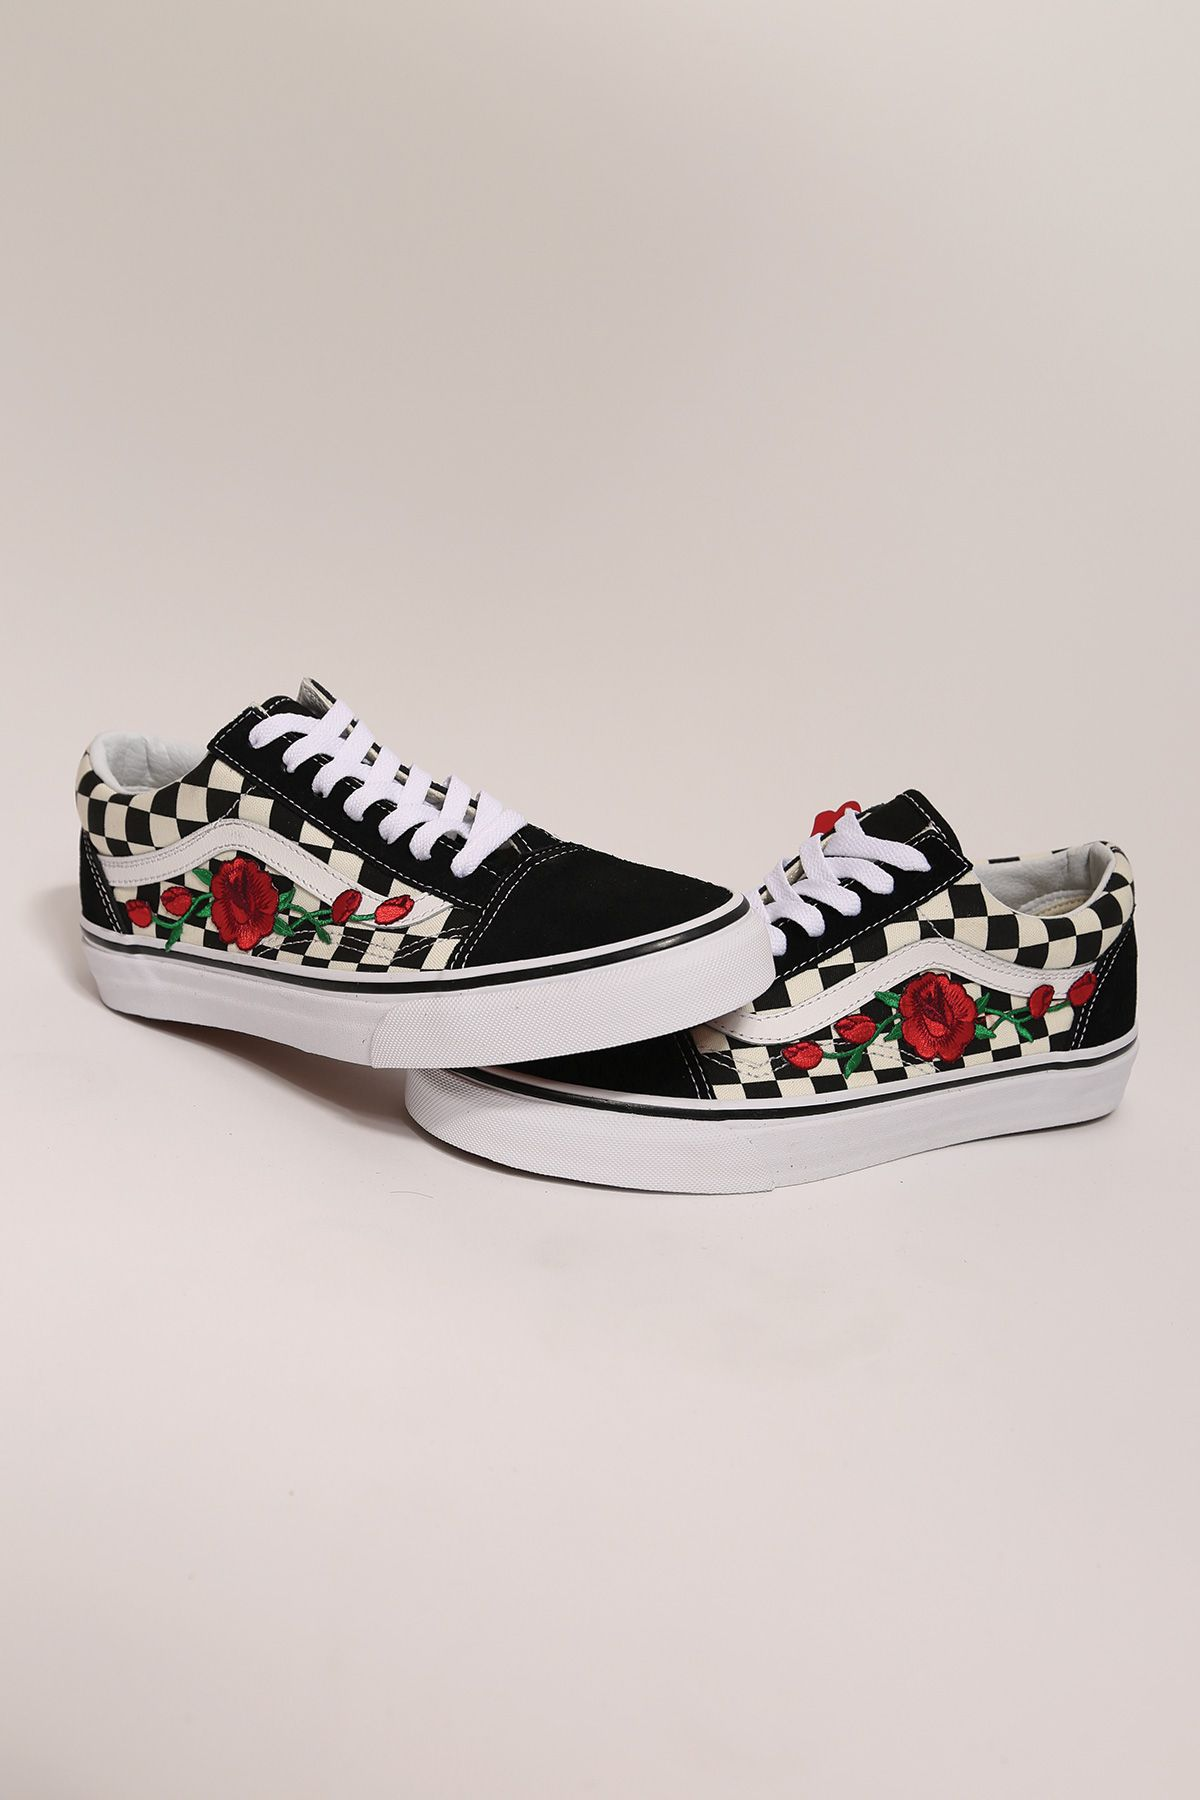 8f20d02a02 brand new vans old skool low top with rose patch shoes are made to order -  will take approx 5-7 business days to ship don't see your size? email us at  ...